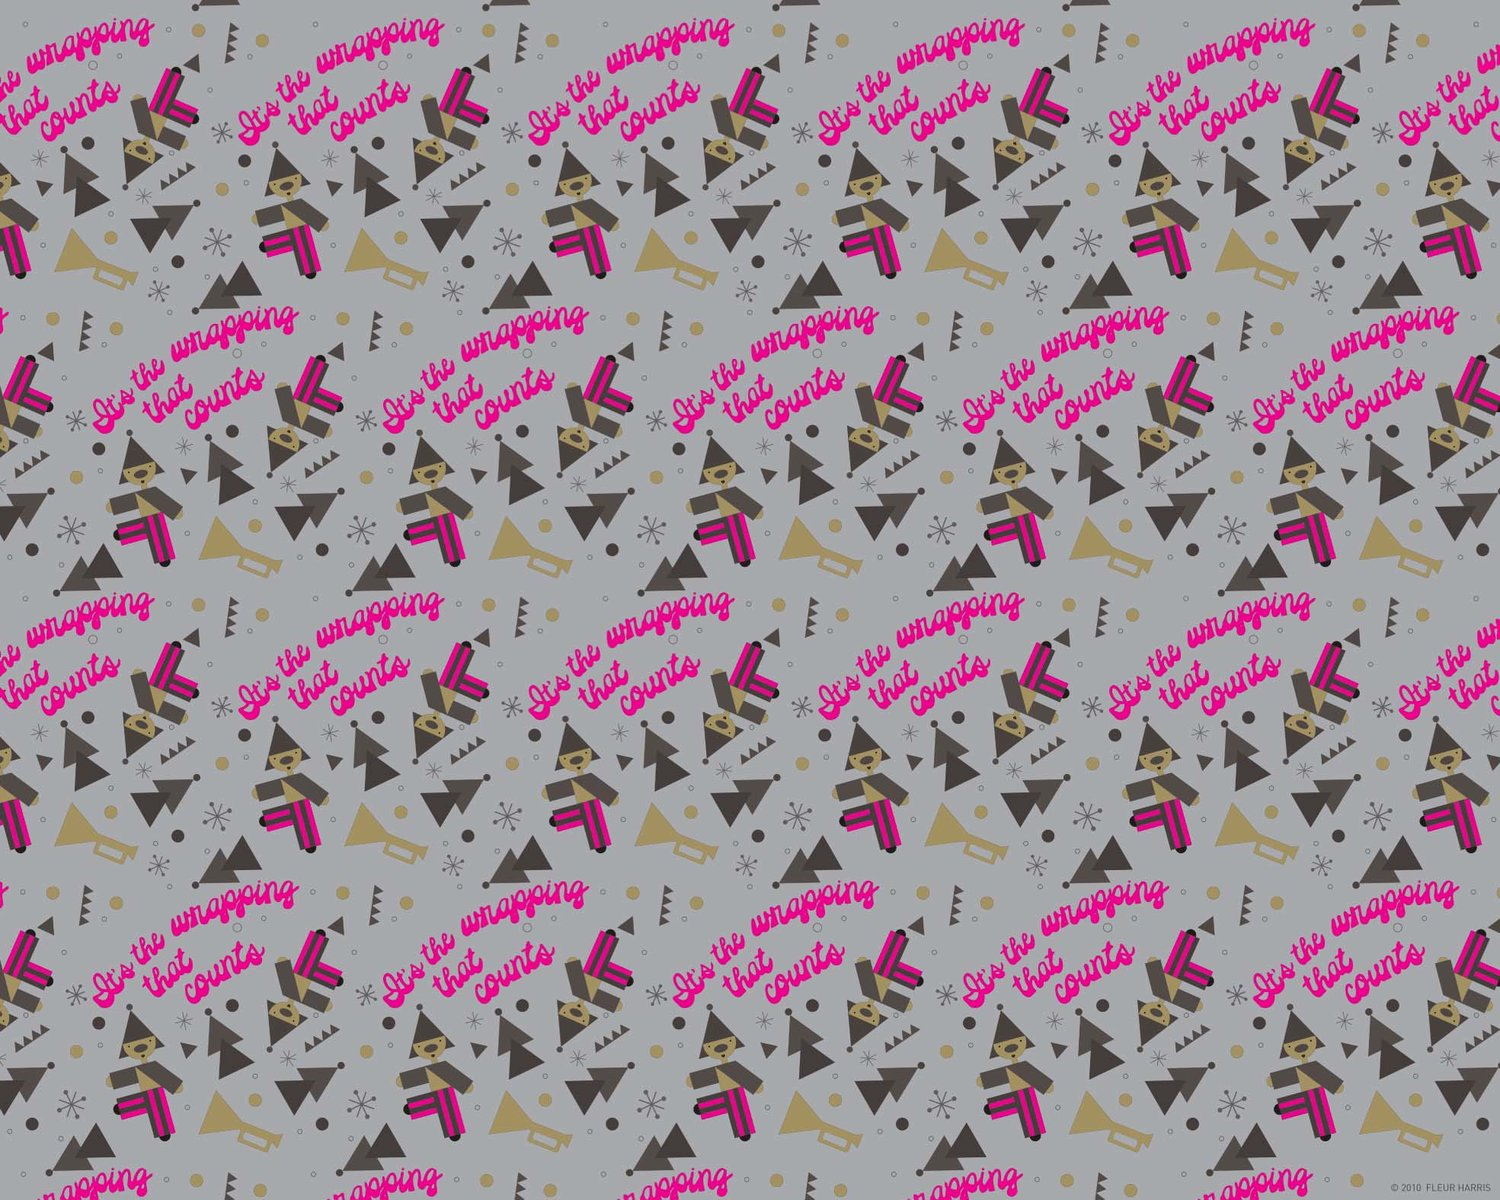 hse00041+dro5a+wrapping+paper+v3-1.jpg